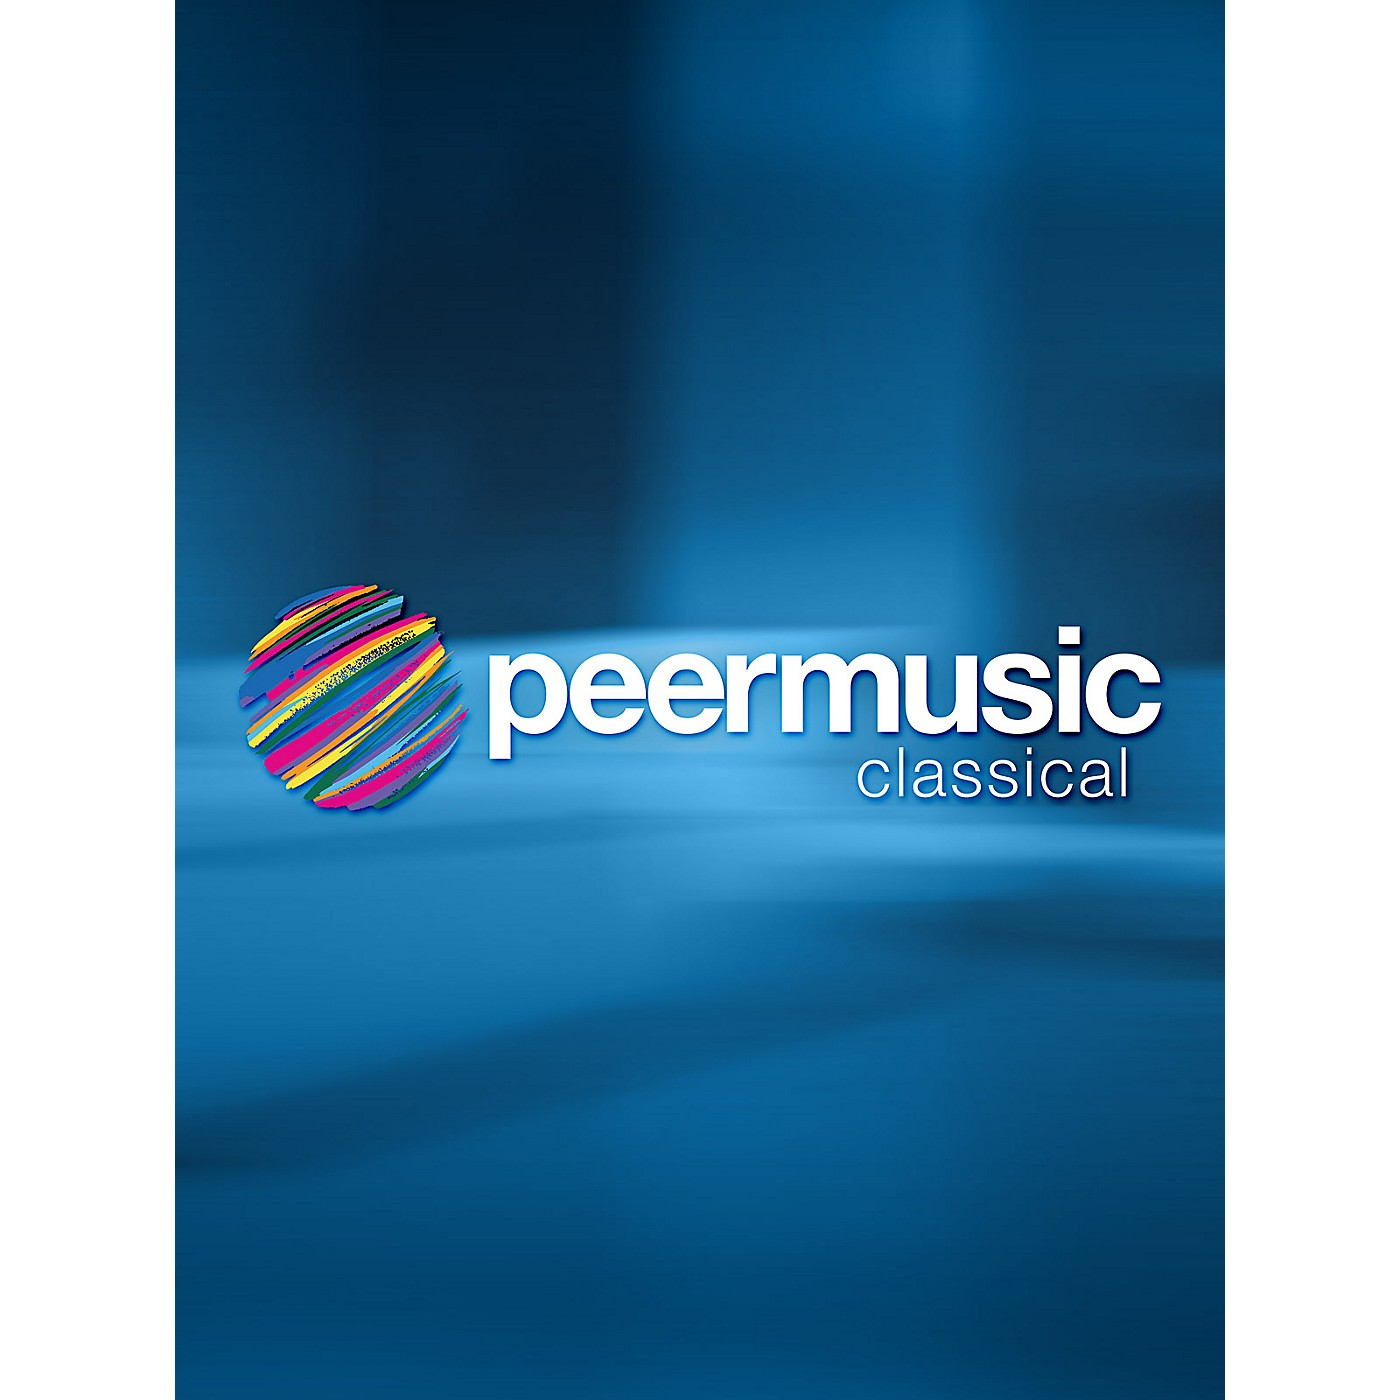 Peer Music Swing Song (Flute and Ensemble, Score) Peermusic Classical Series Softcover Composed by Derek Bermel thumbnail